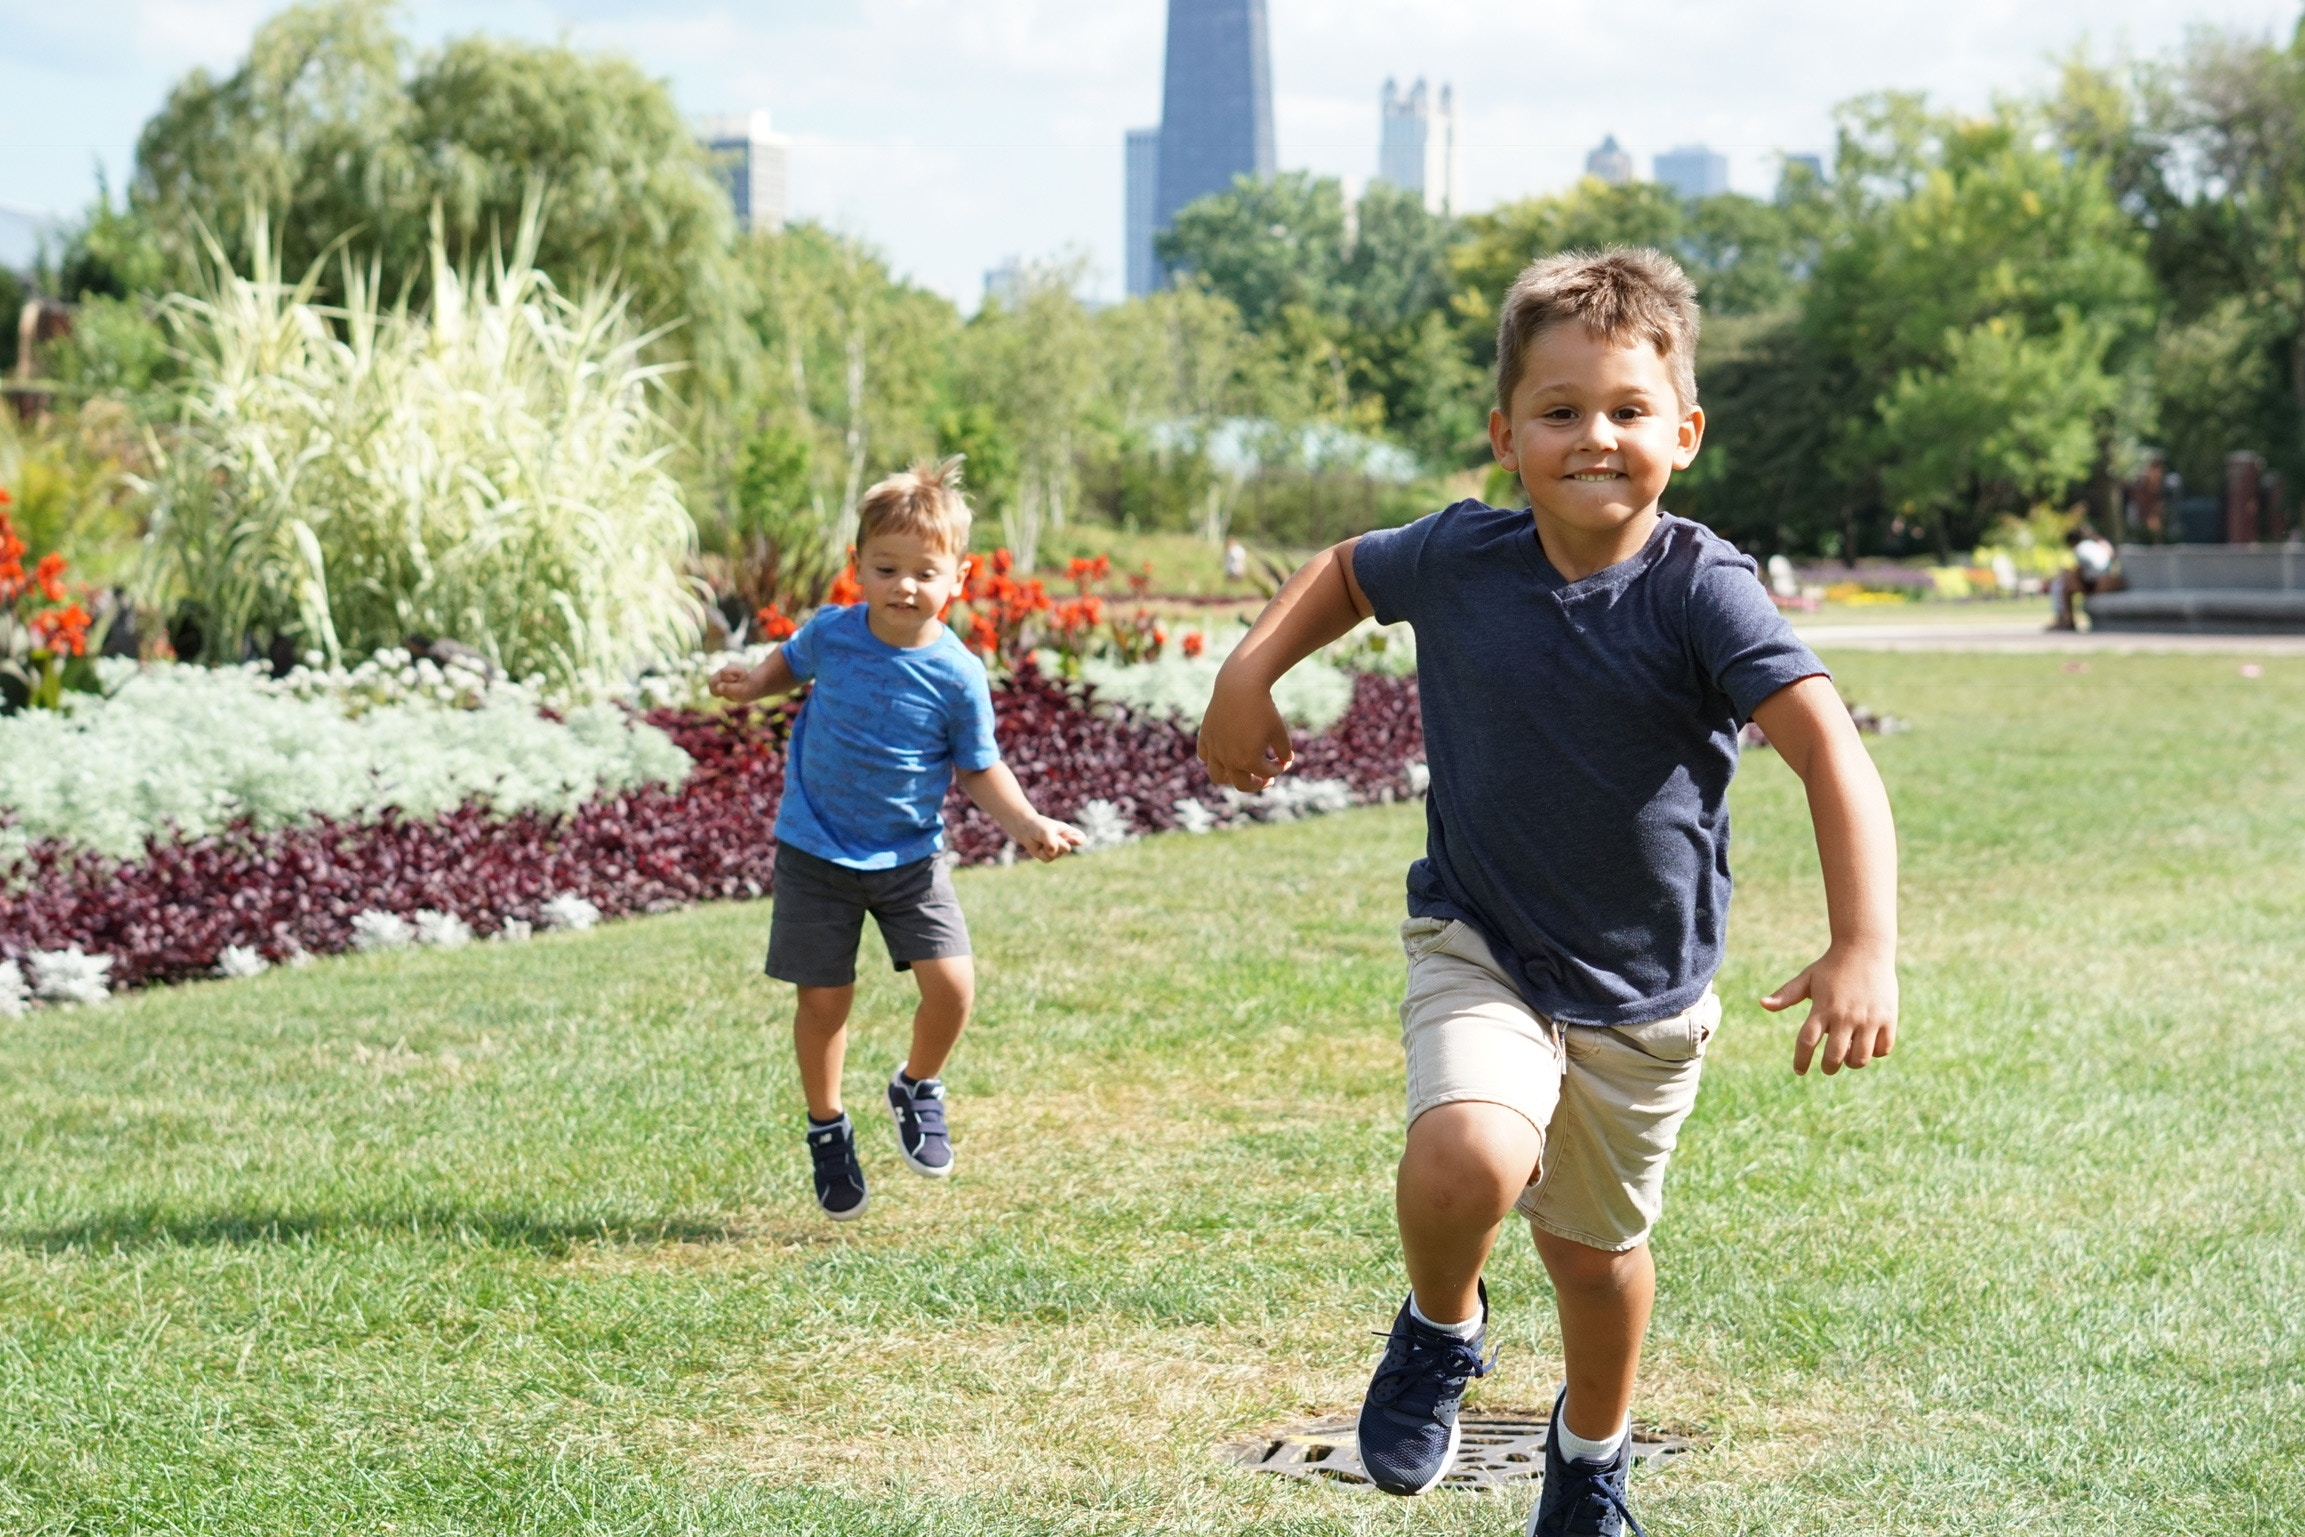 Two young boys running outside.